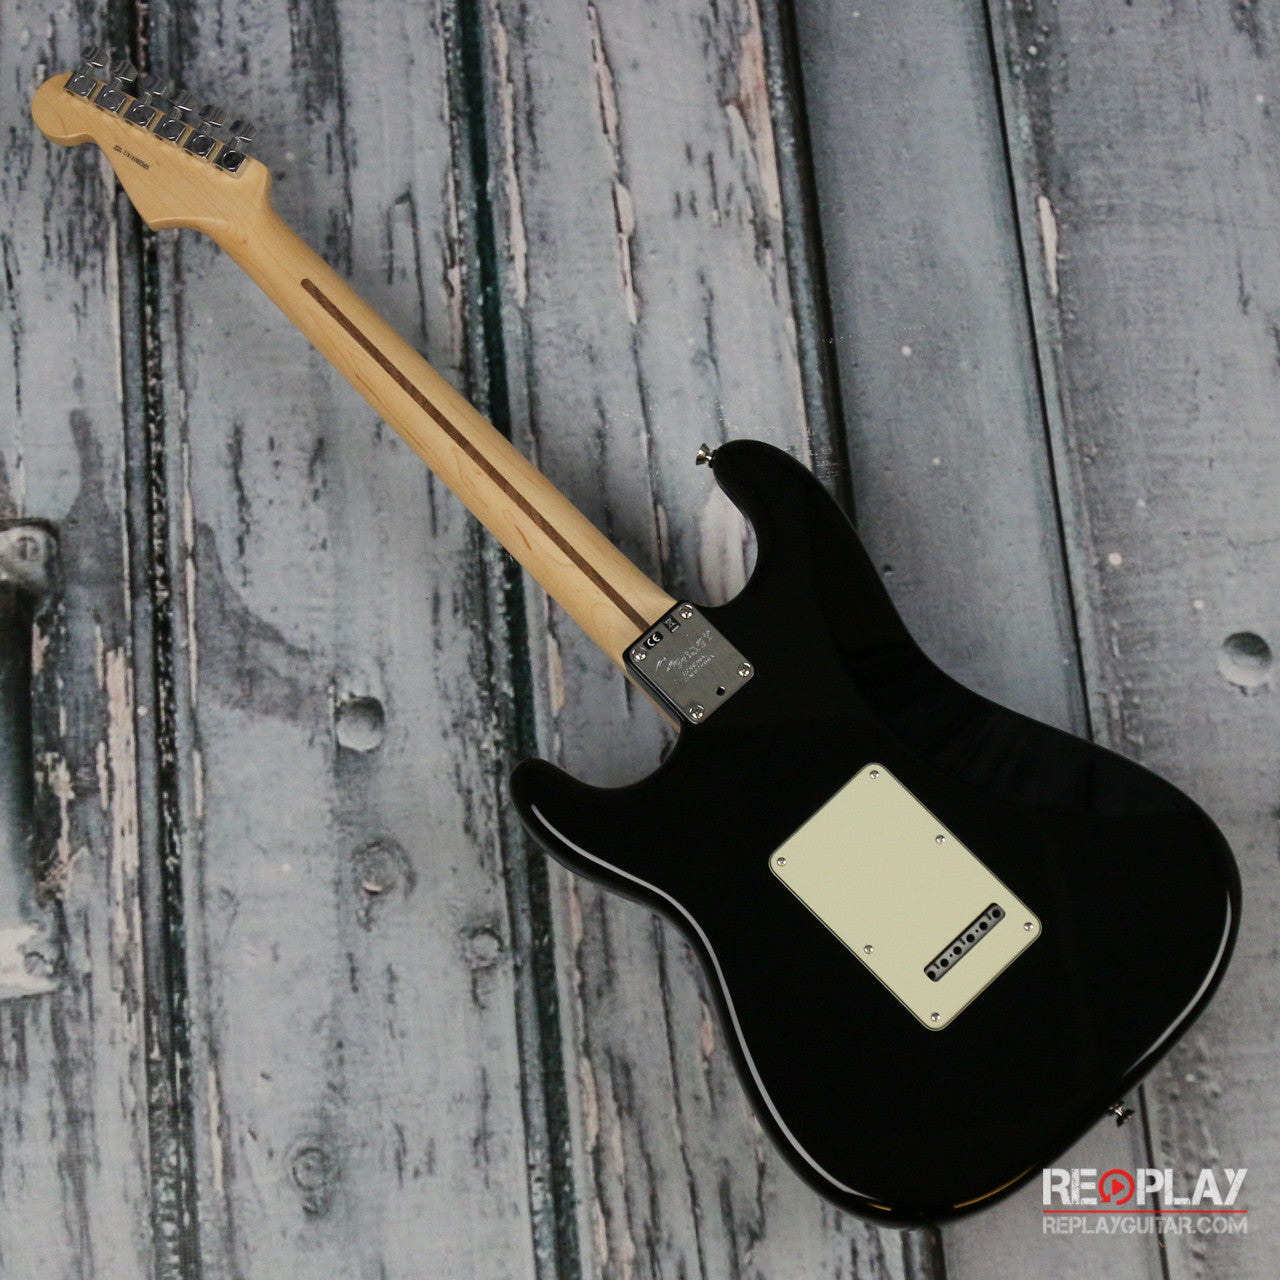 Fender Stratocaster Black | For Sale | Replay Guitar